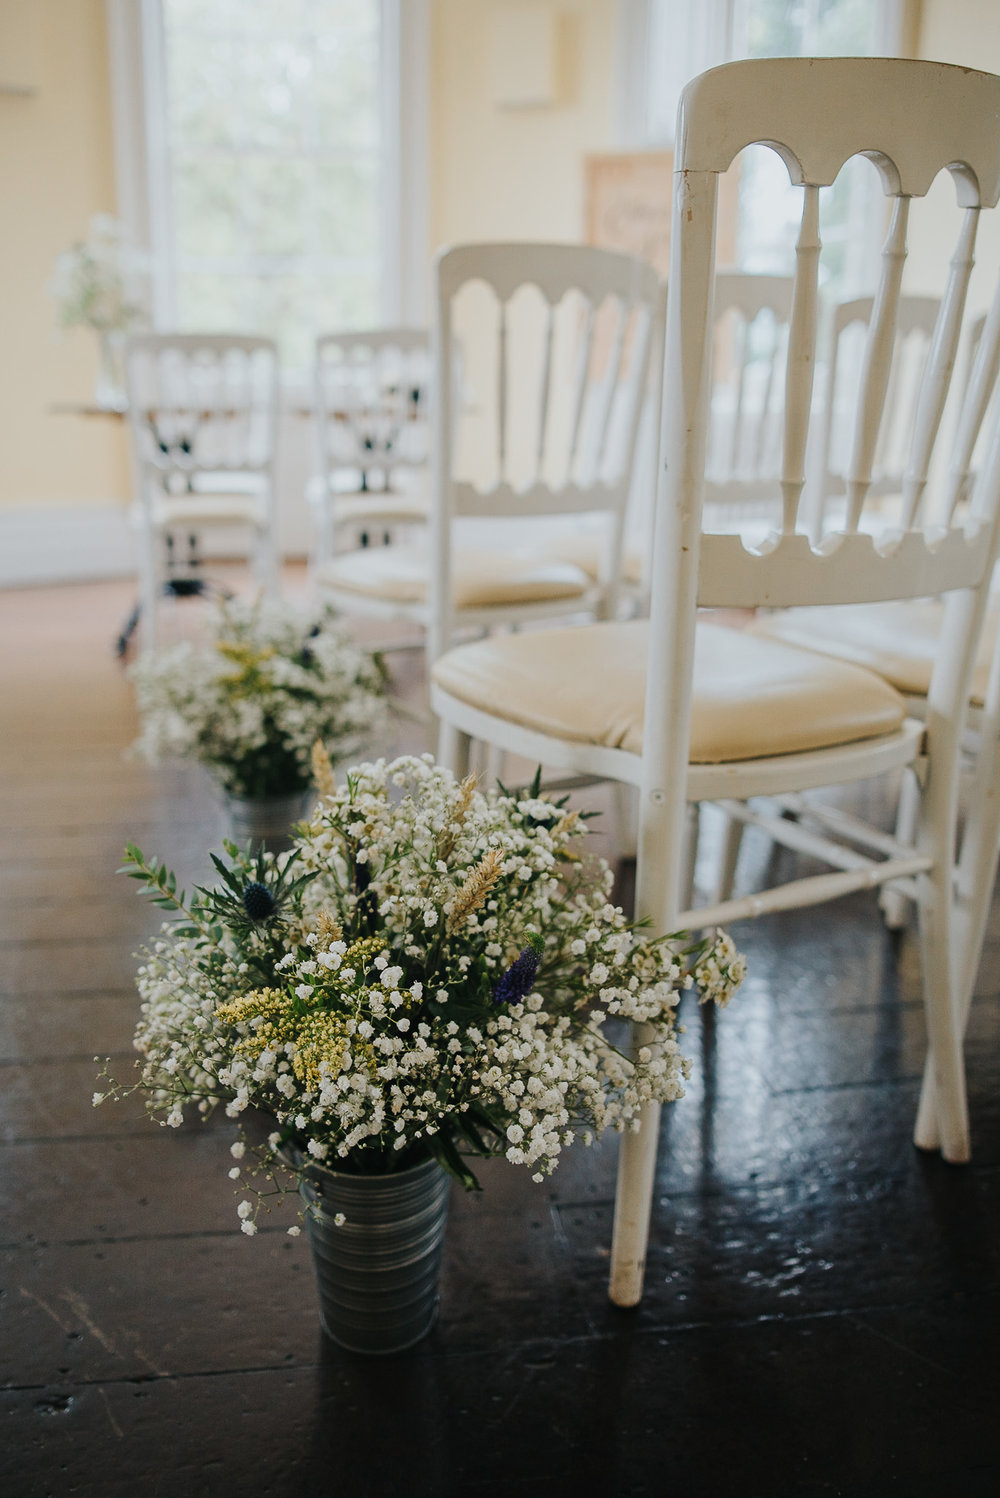 Details of wedding flowers at Clissold House London